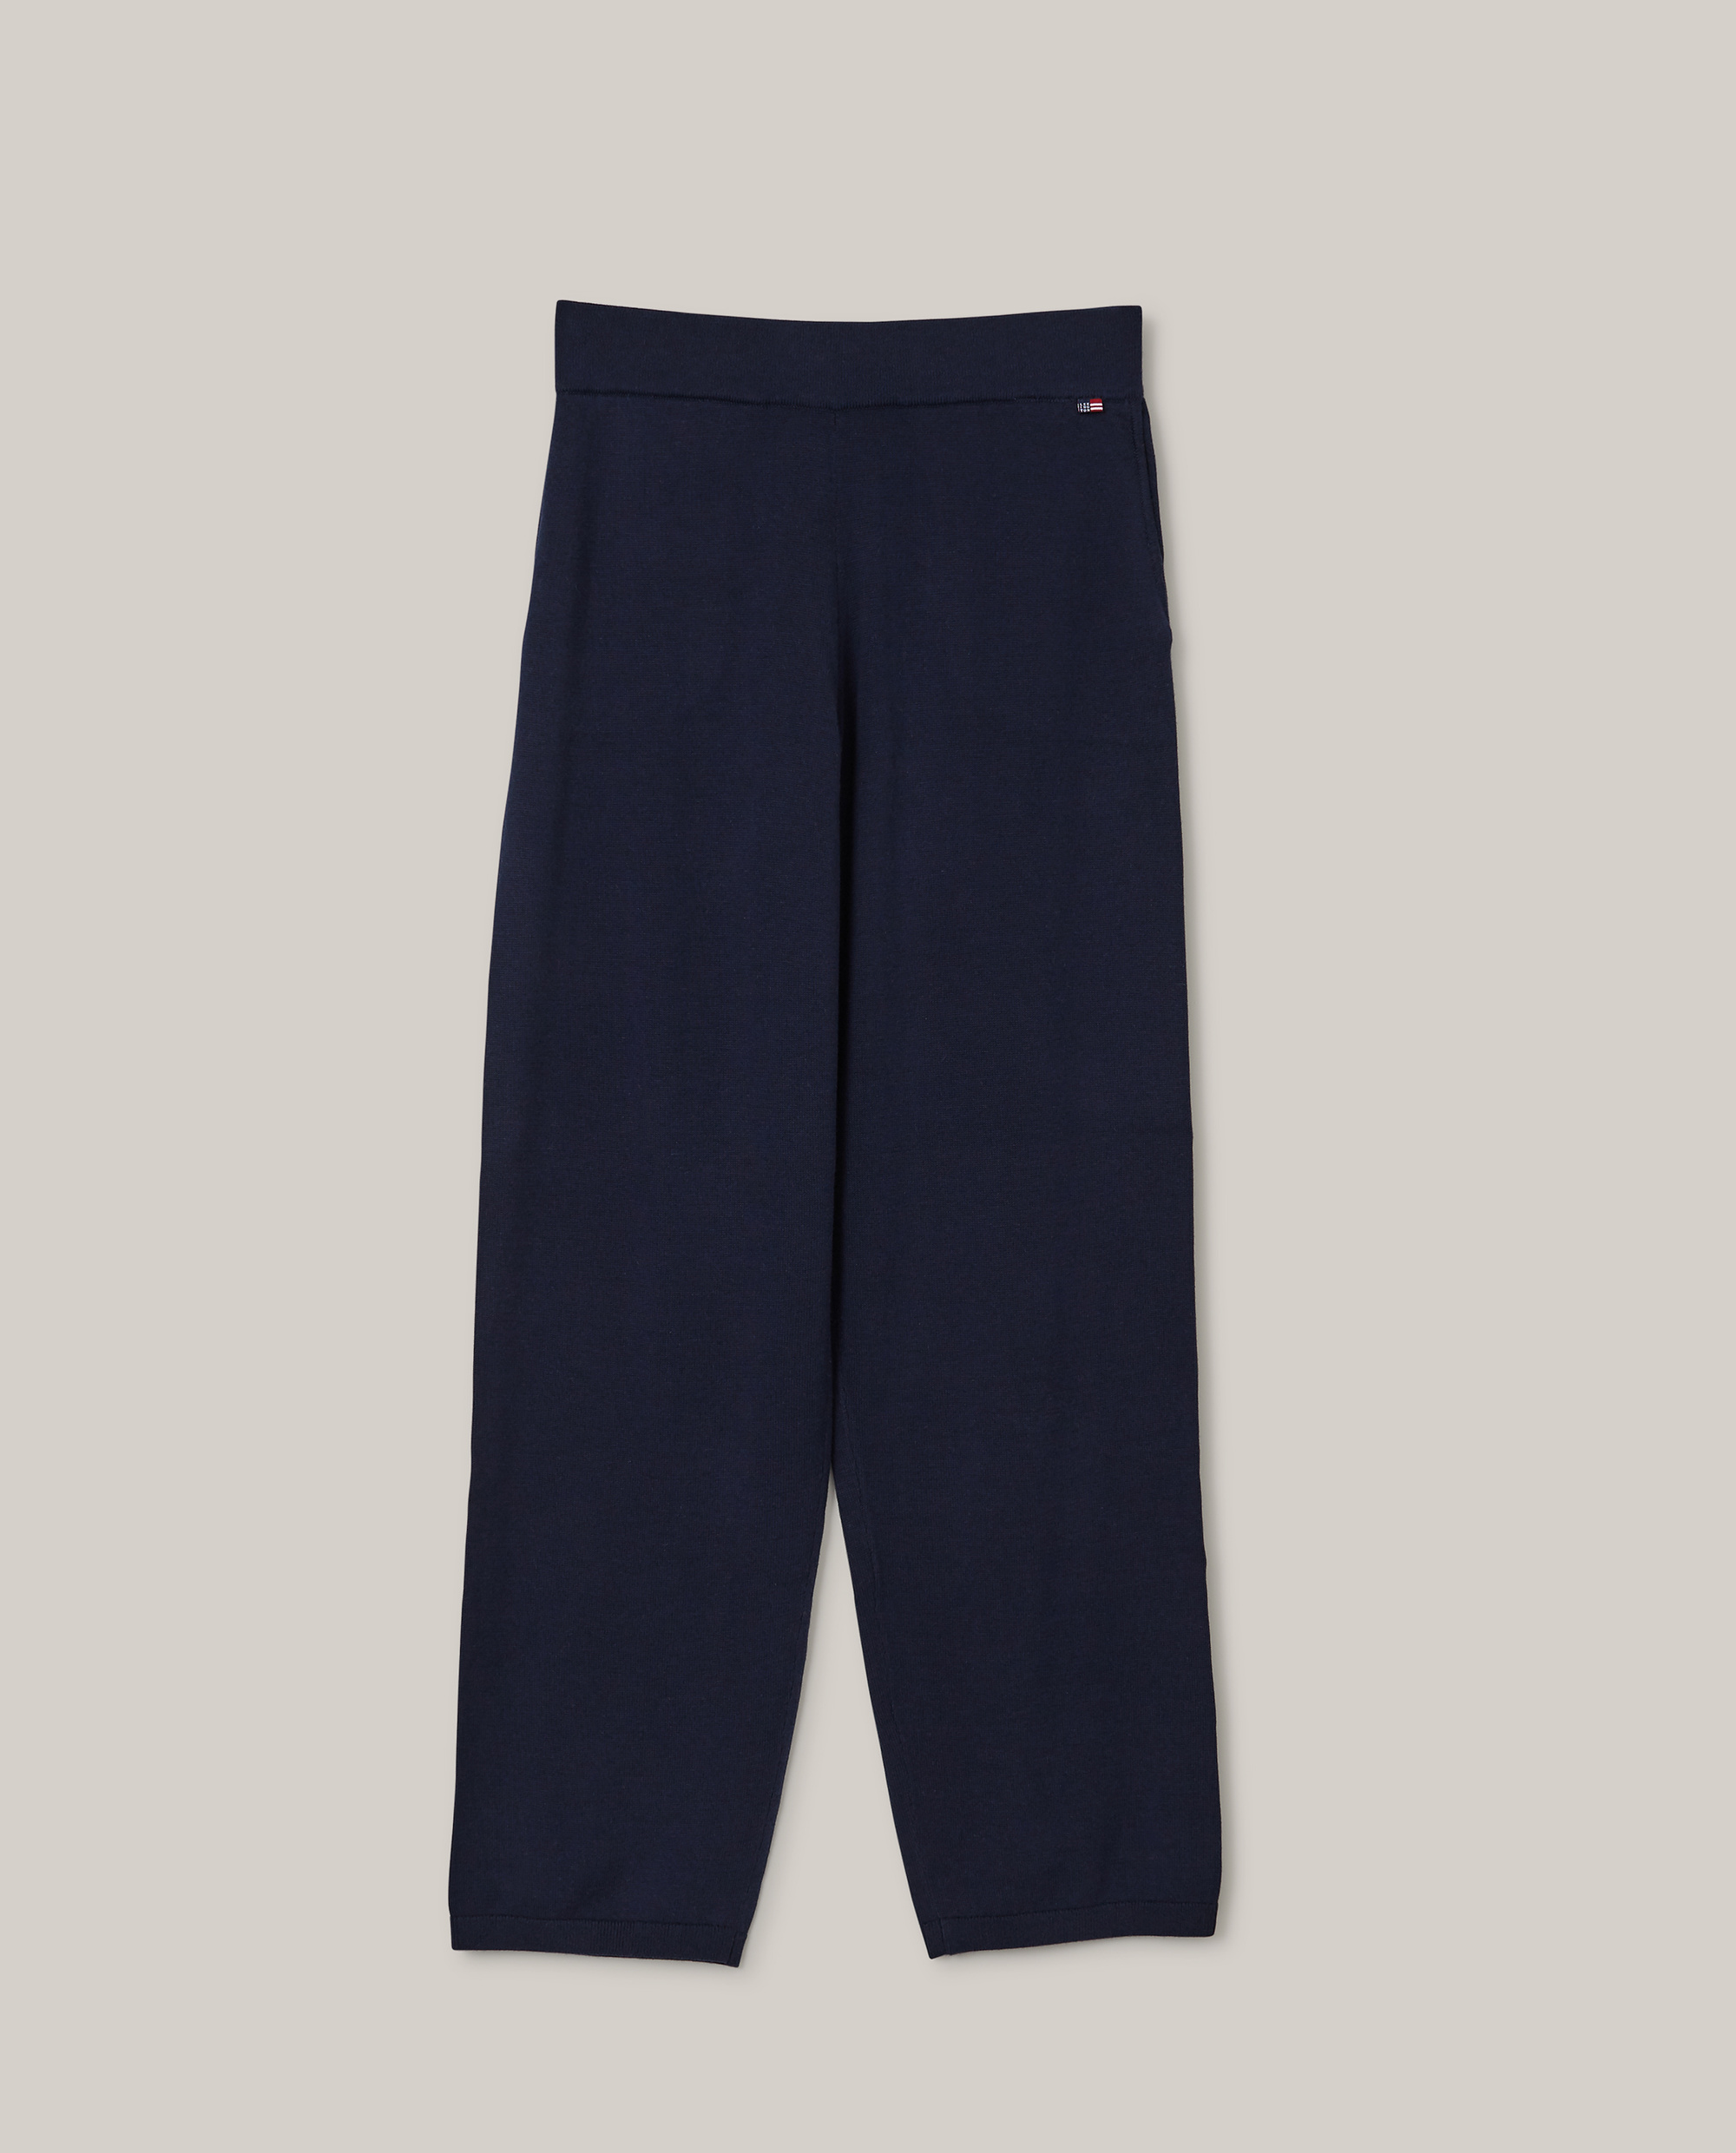 Des Organic Cotton/Lyocell Knitted Pants, Dark Blue